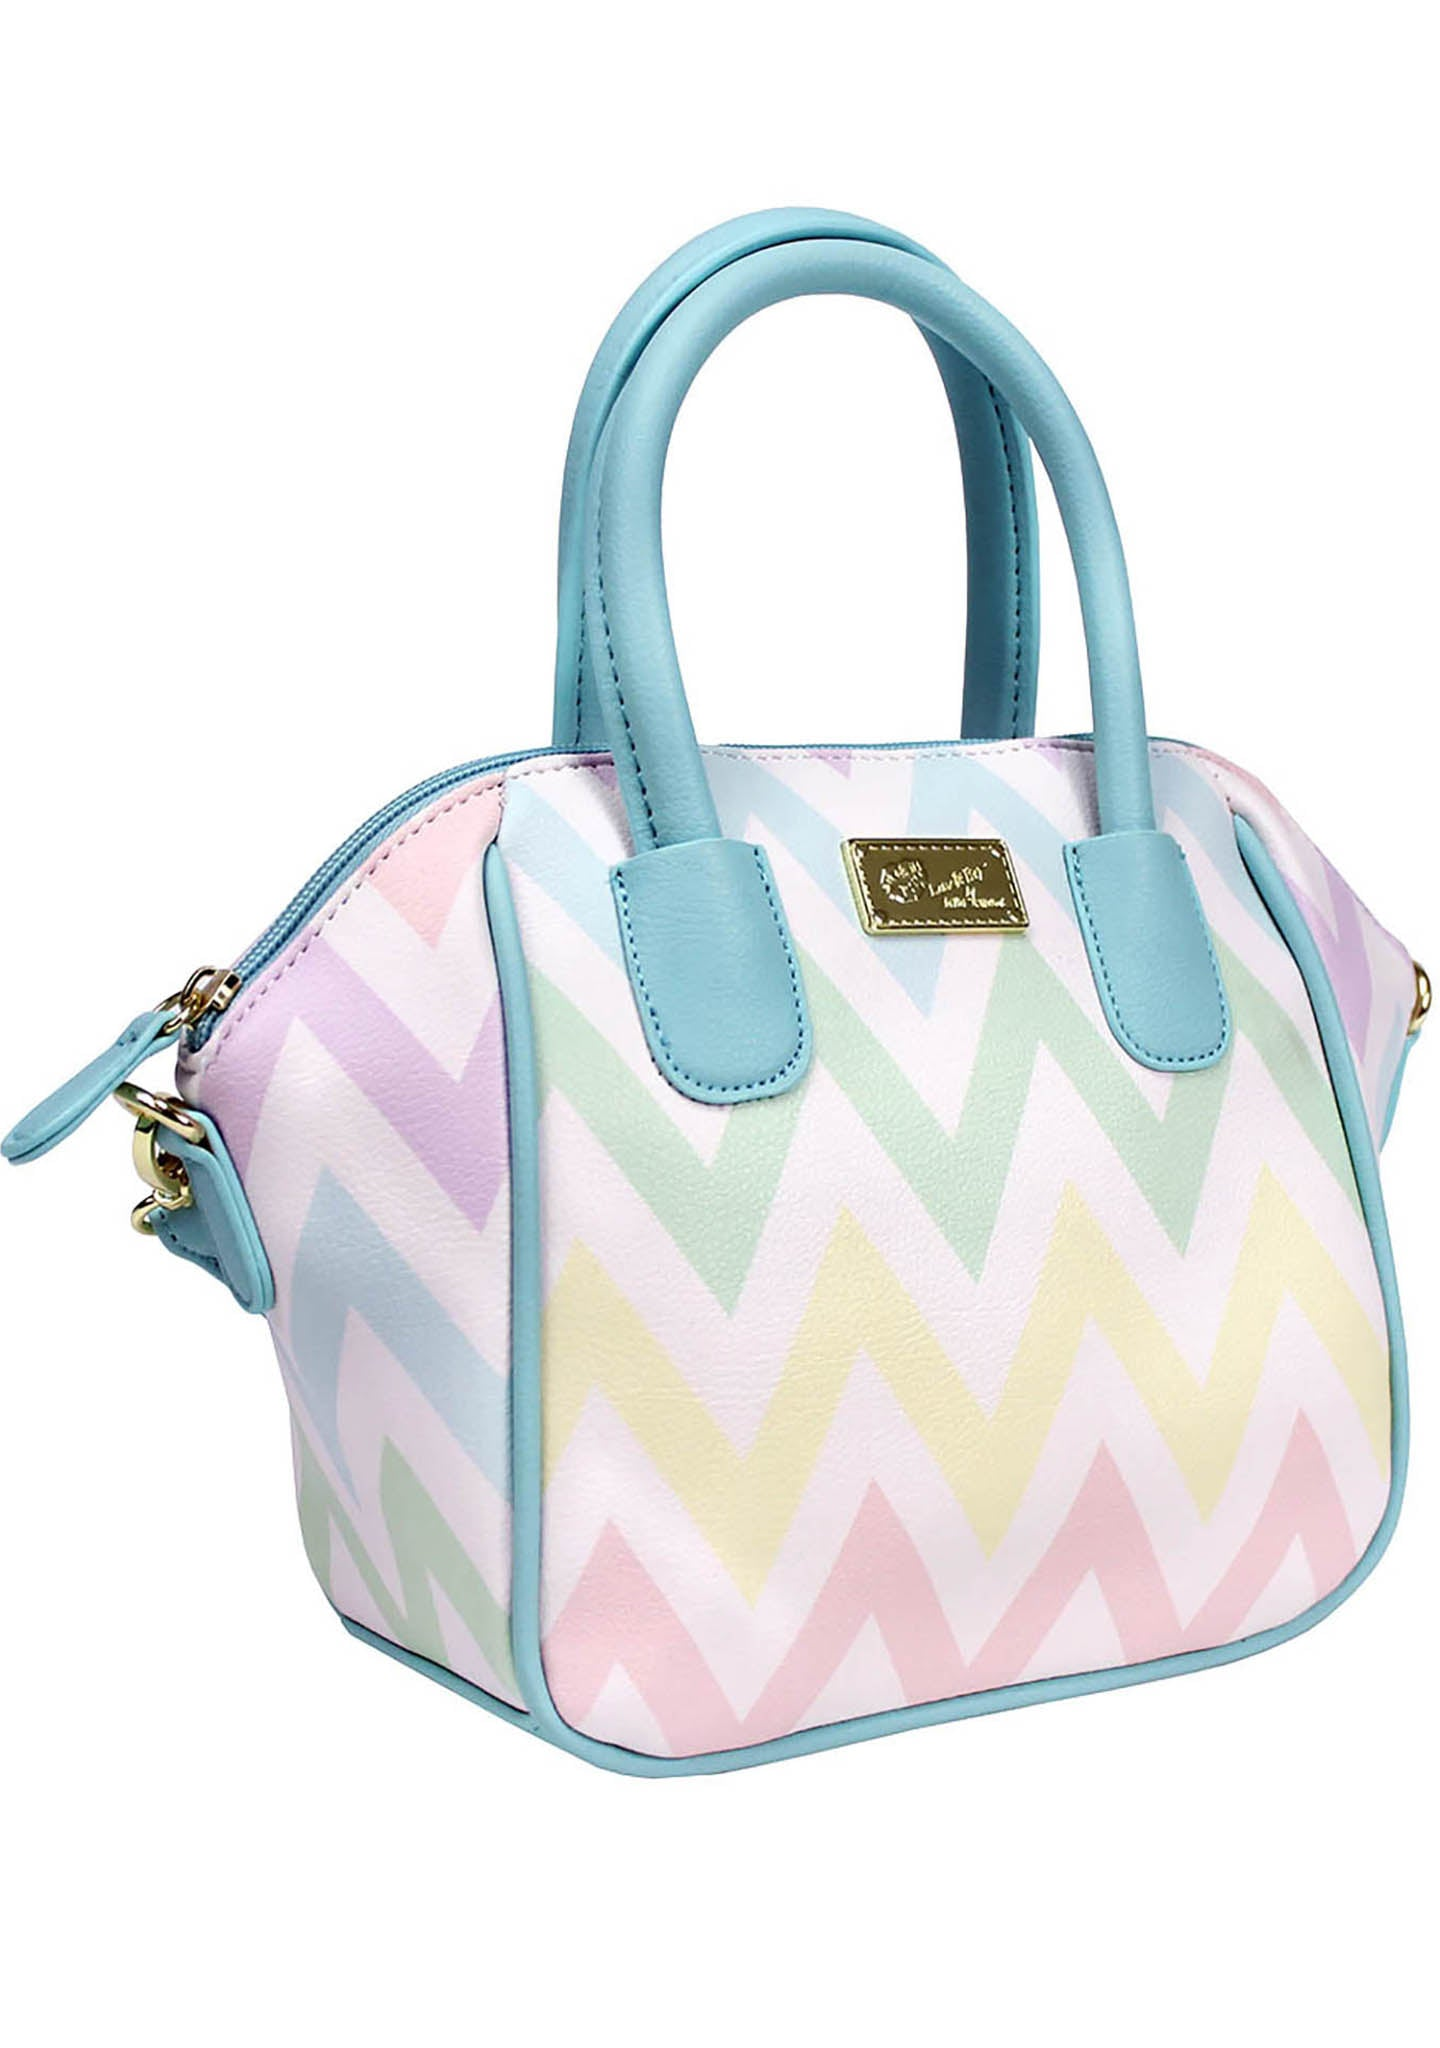 LBQuinn Rainbow Chevron Mini Satchel Bag